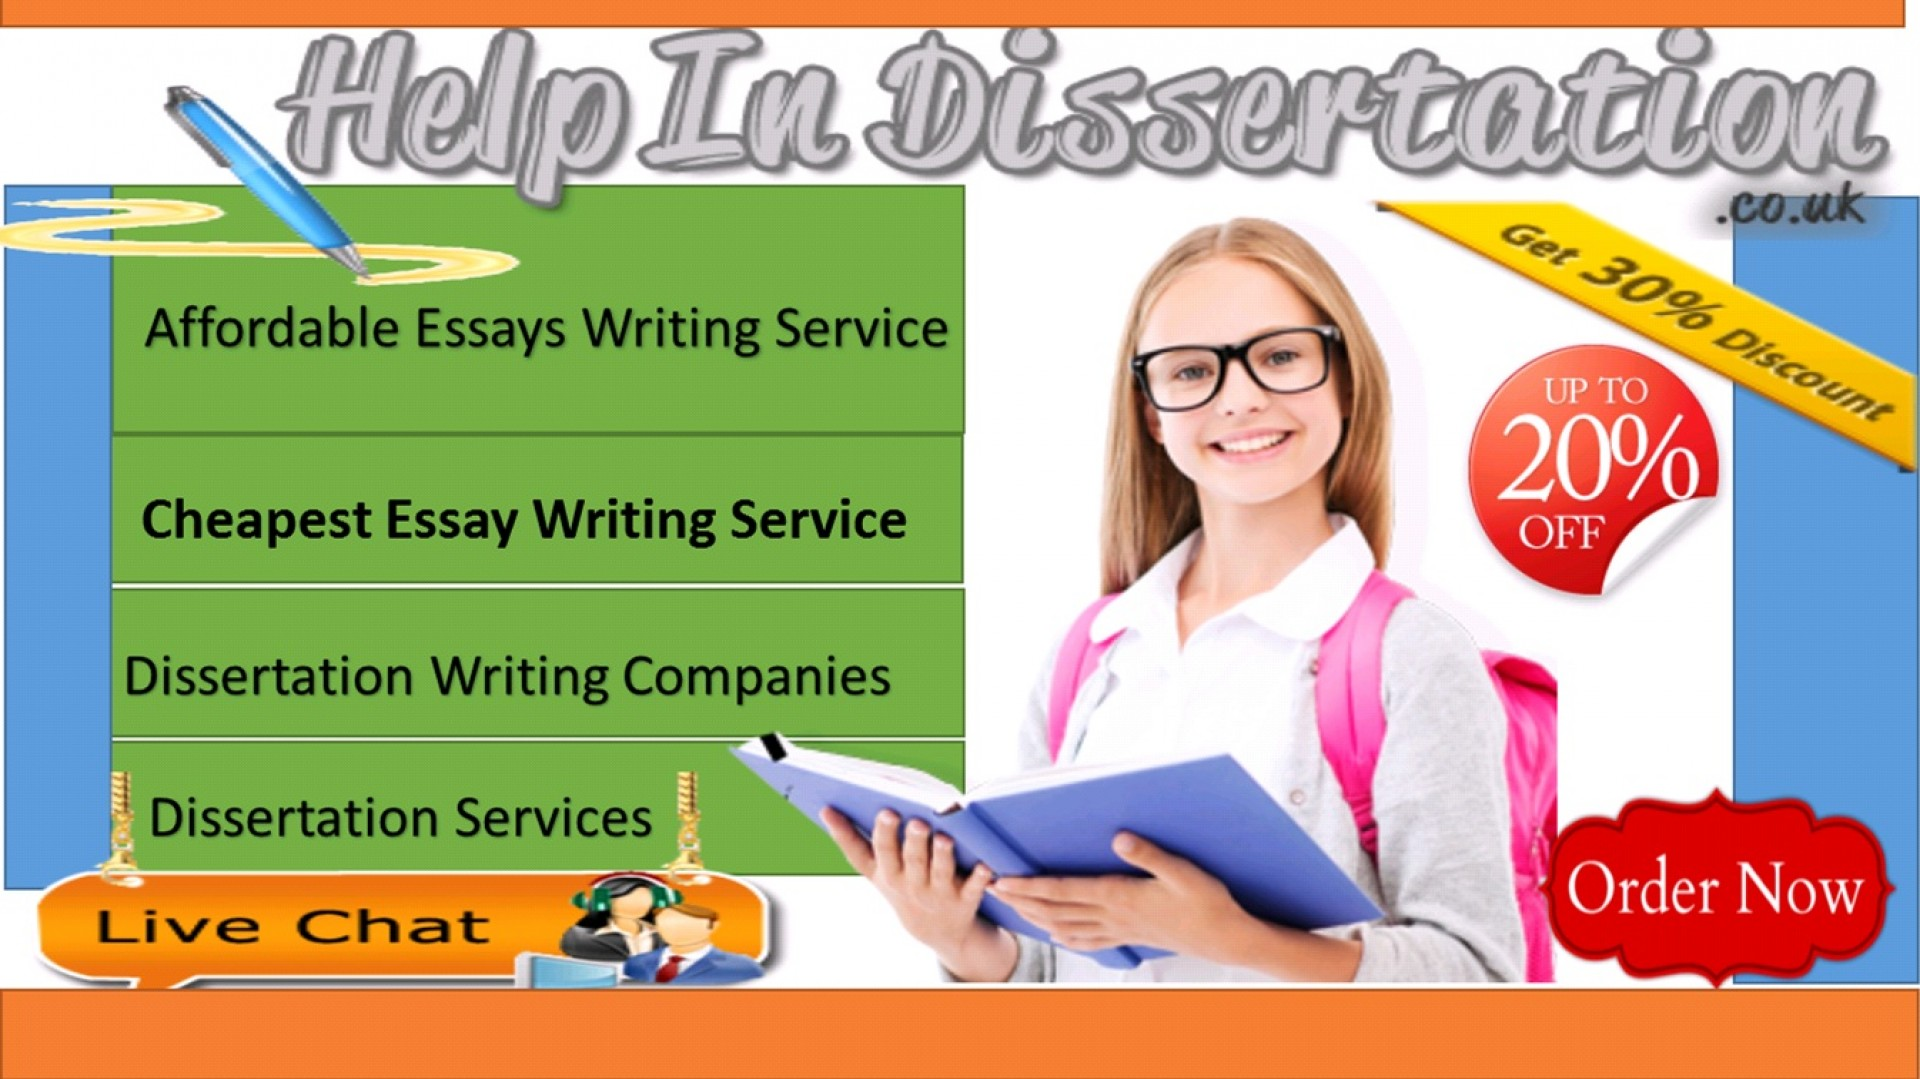 003 Cheap Essay Writing Service Uk Example Dissertation For Incredible Reviews Law 1920